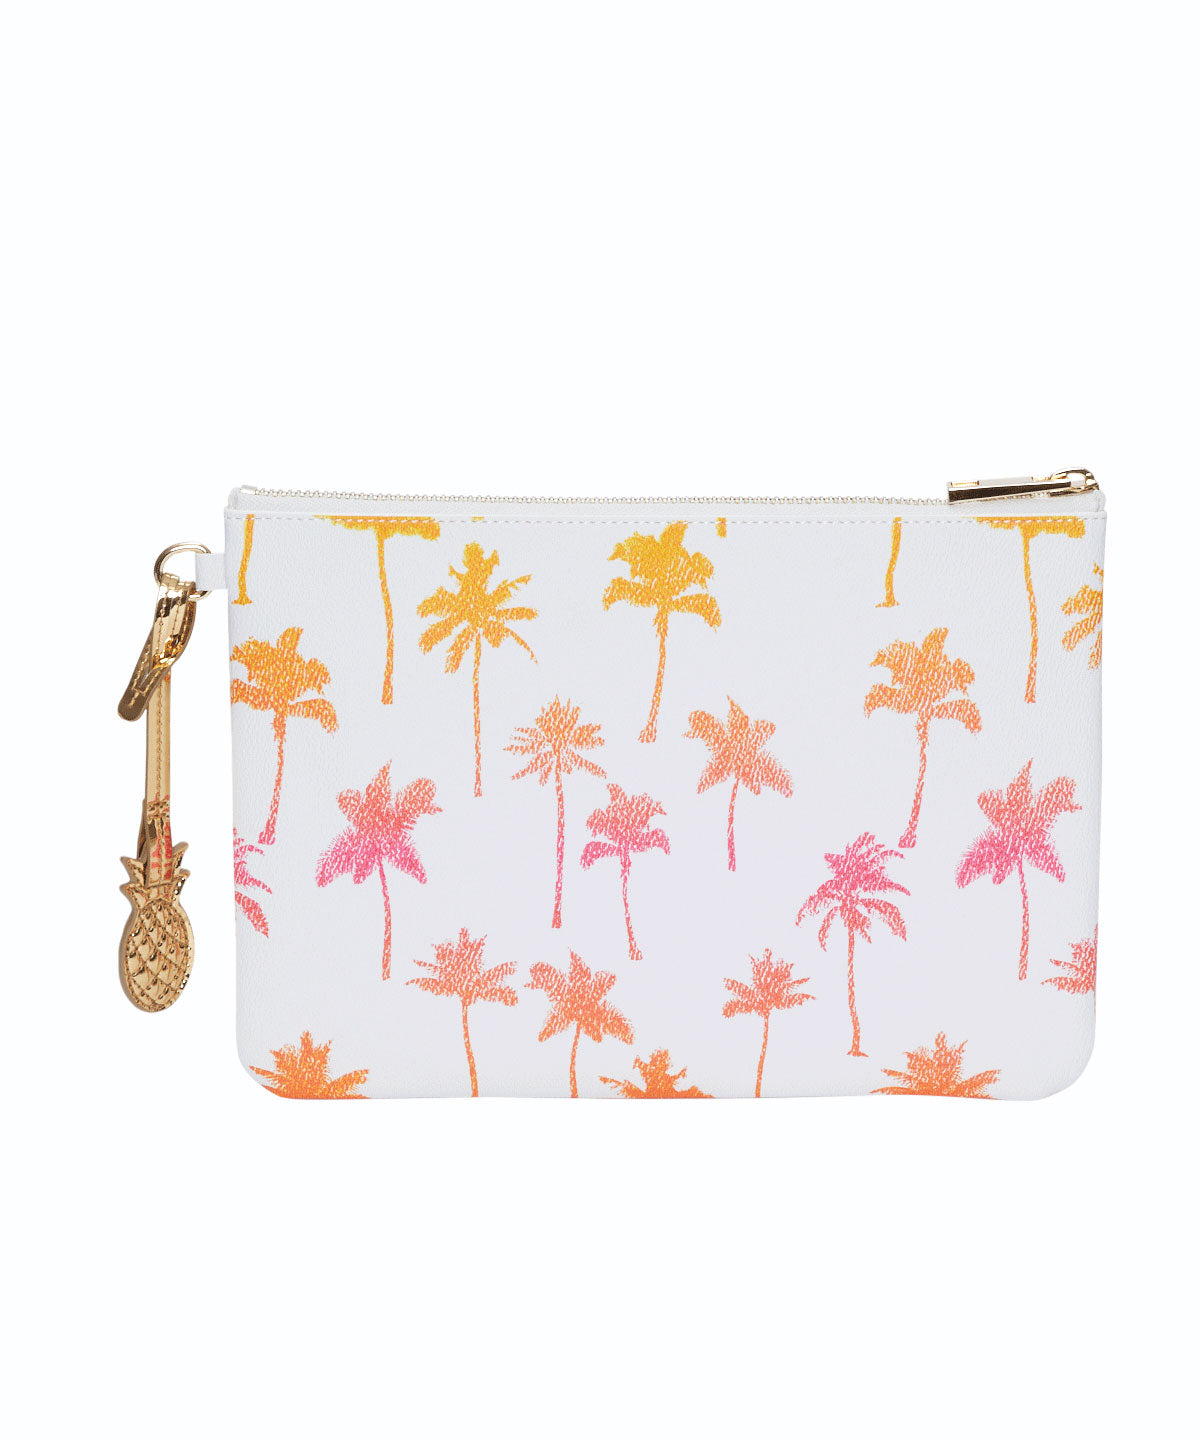 Exclusive Palm Tree Print Pineapple Charm Flat Pouch